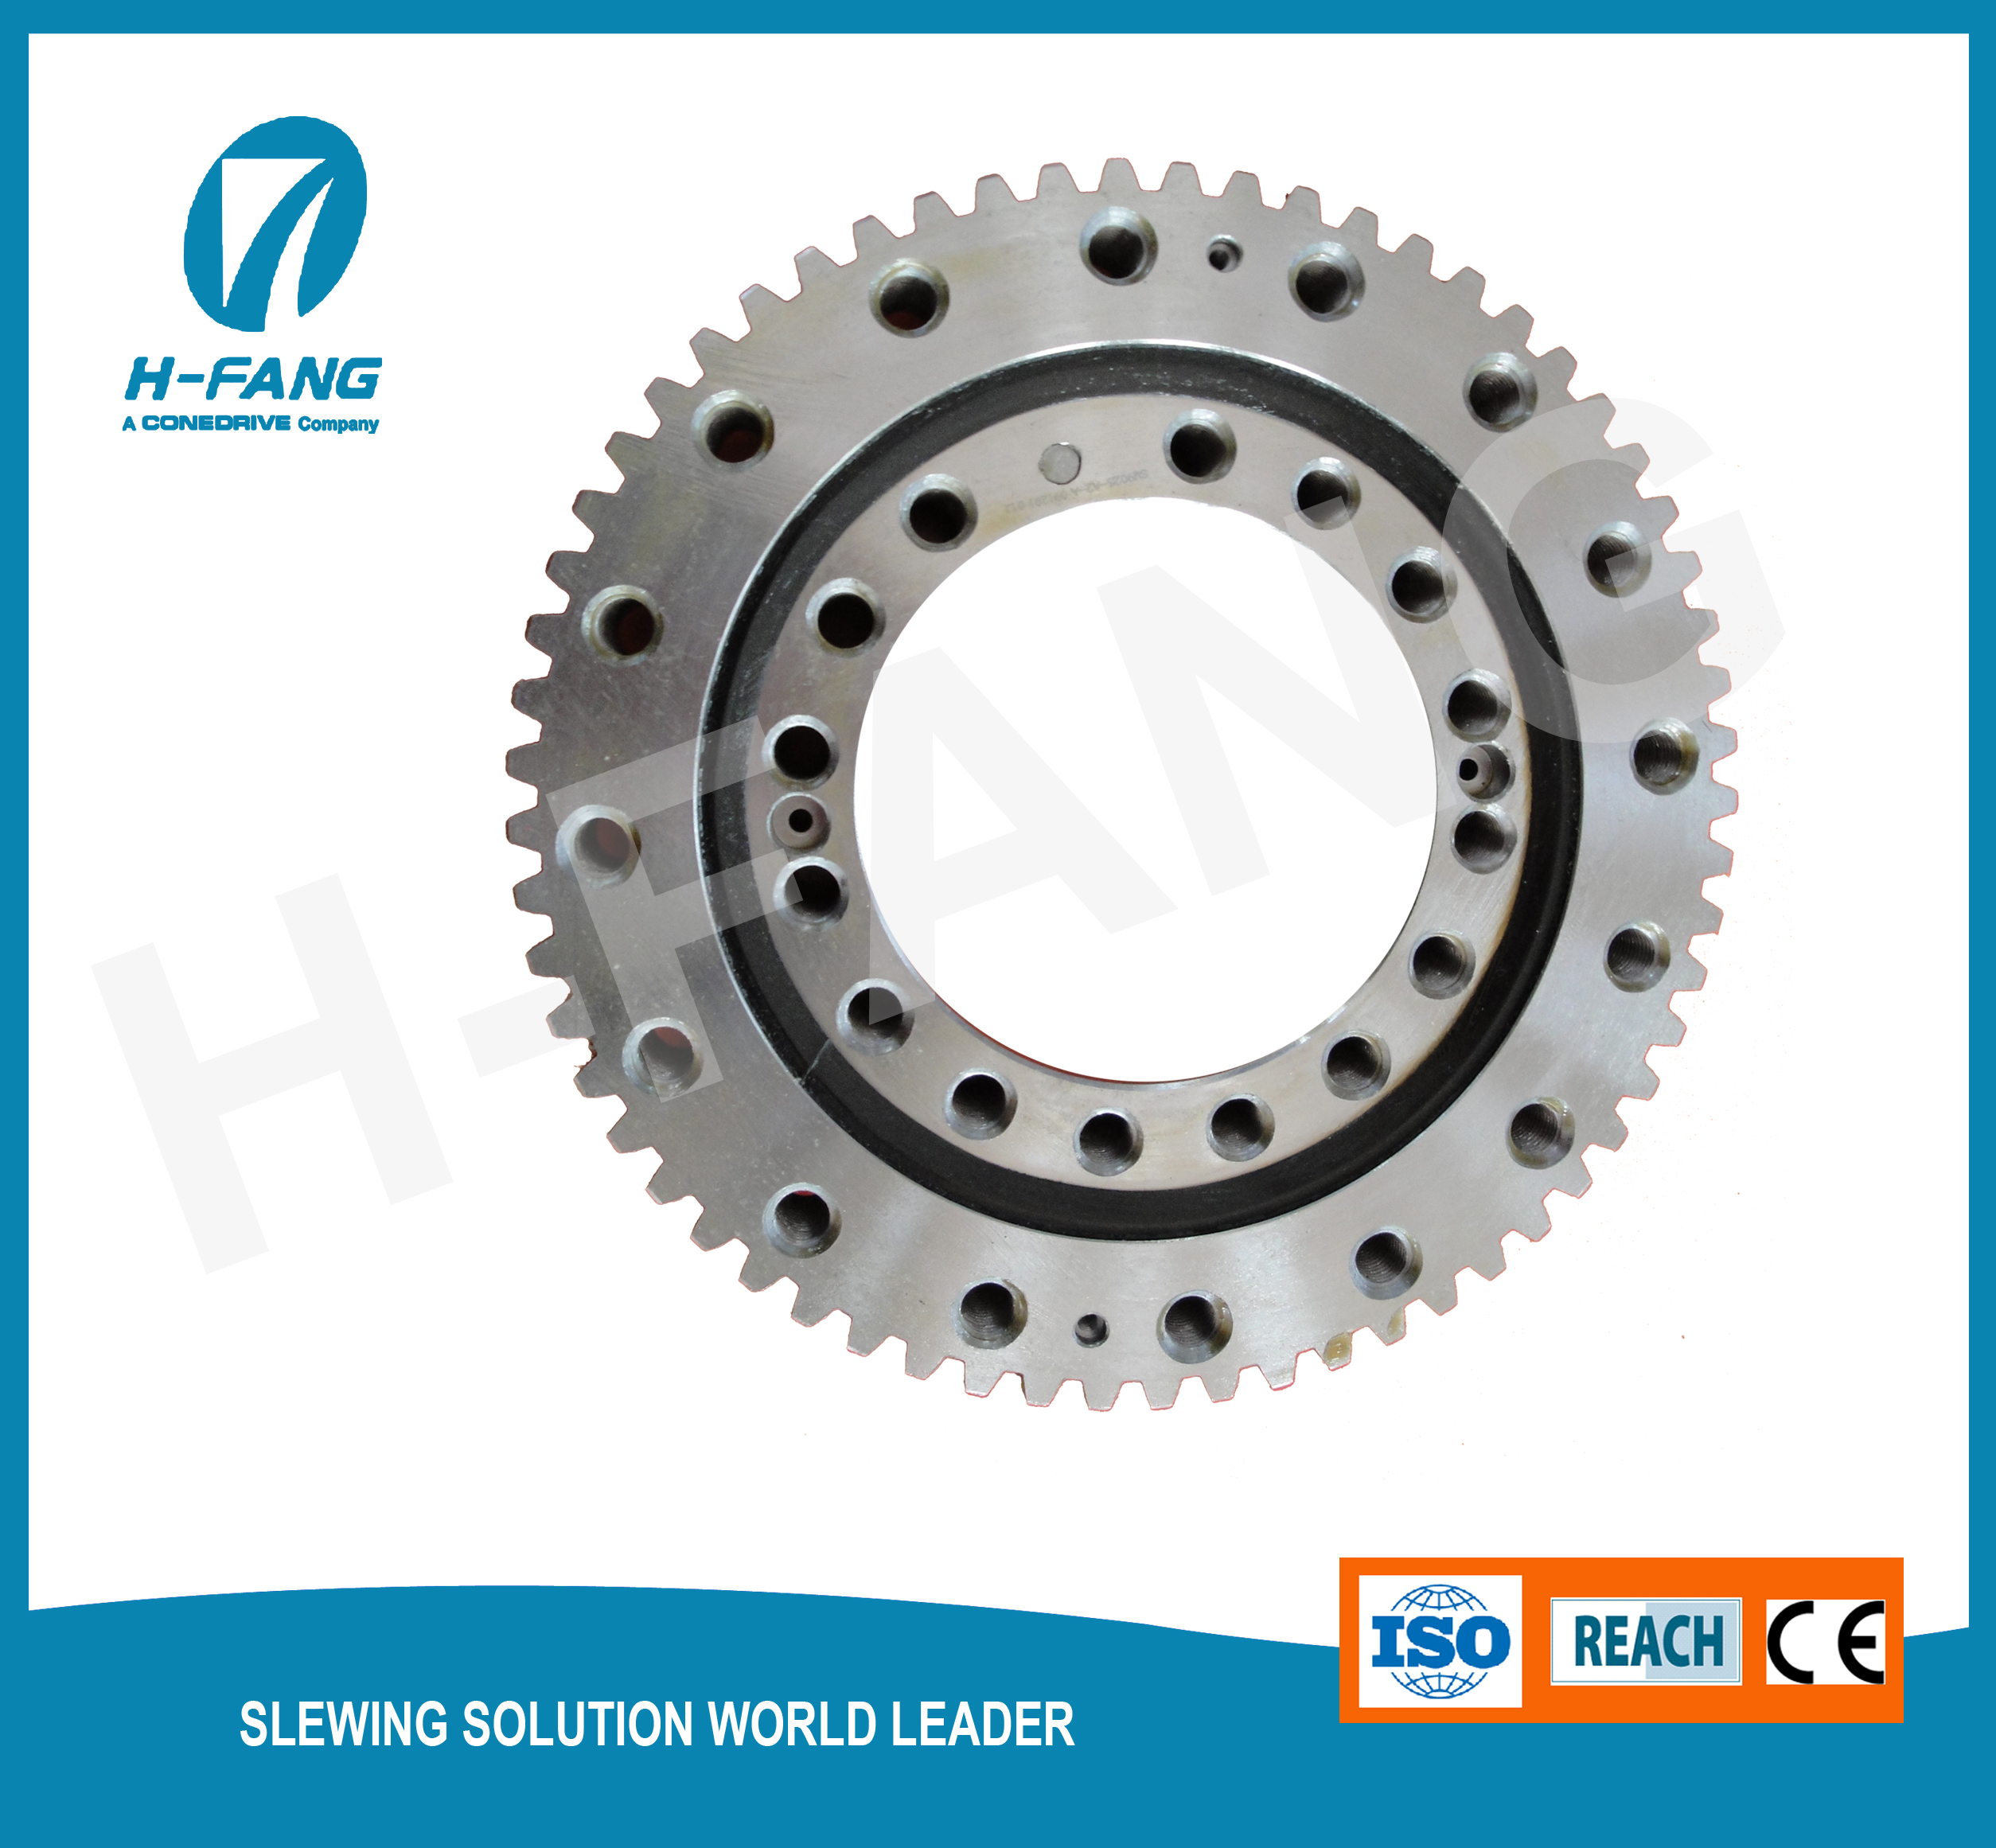 Gear wheel for truck crane